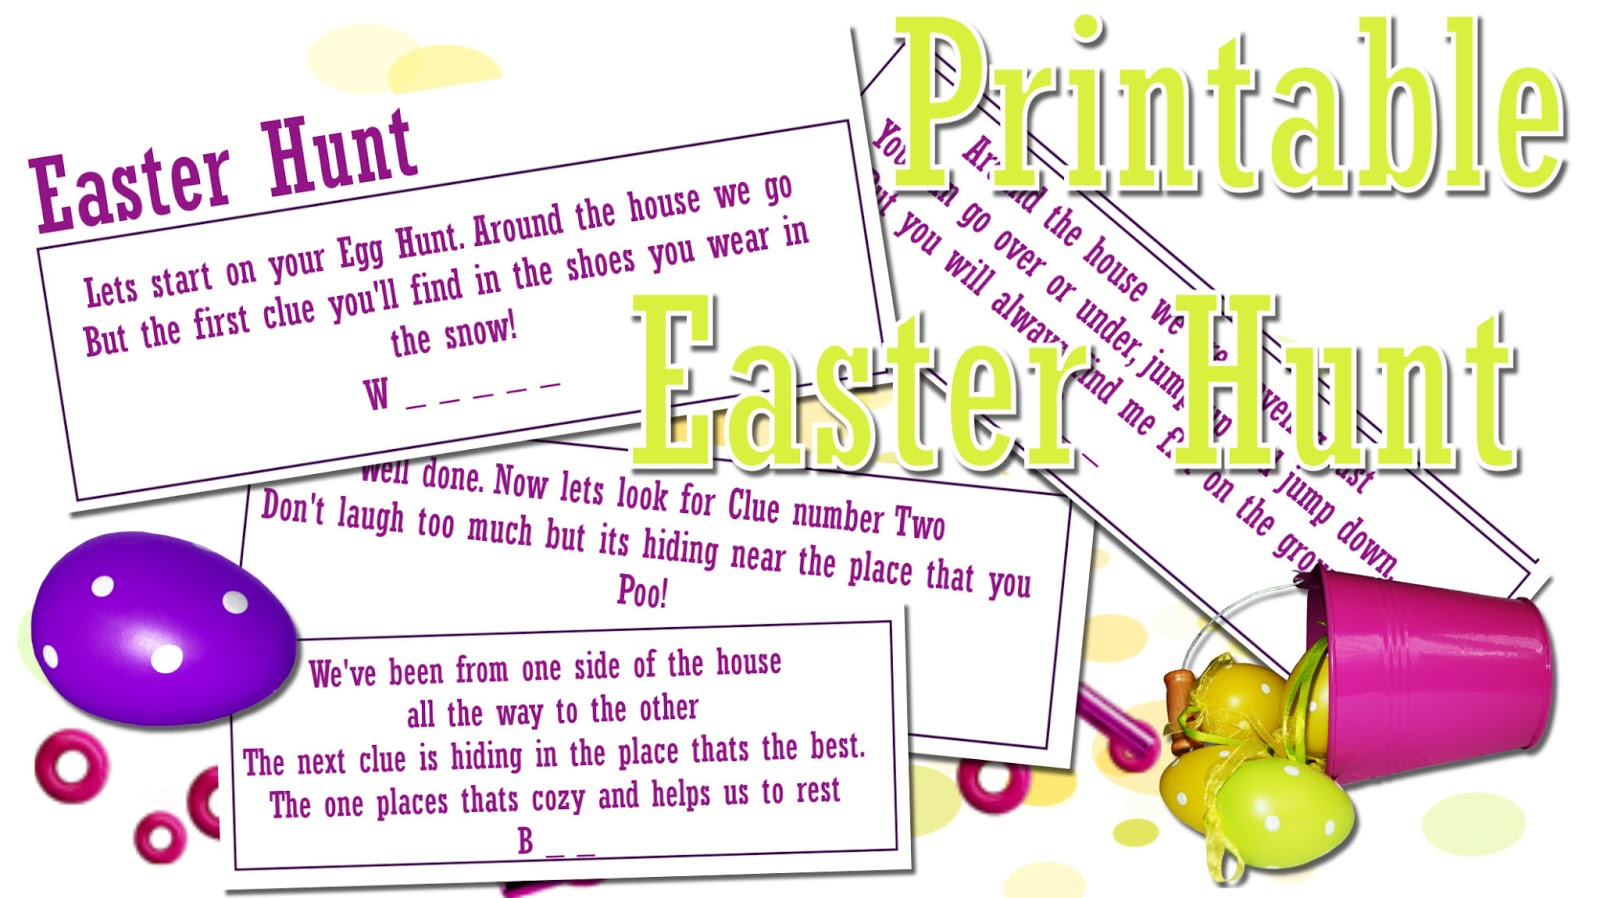 This Is Me Sarah Mum Of 3: Fun Easter Egg Hunt - Print Out! - Easter Scavenger Hunt Riddles Free Printable